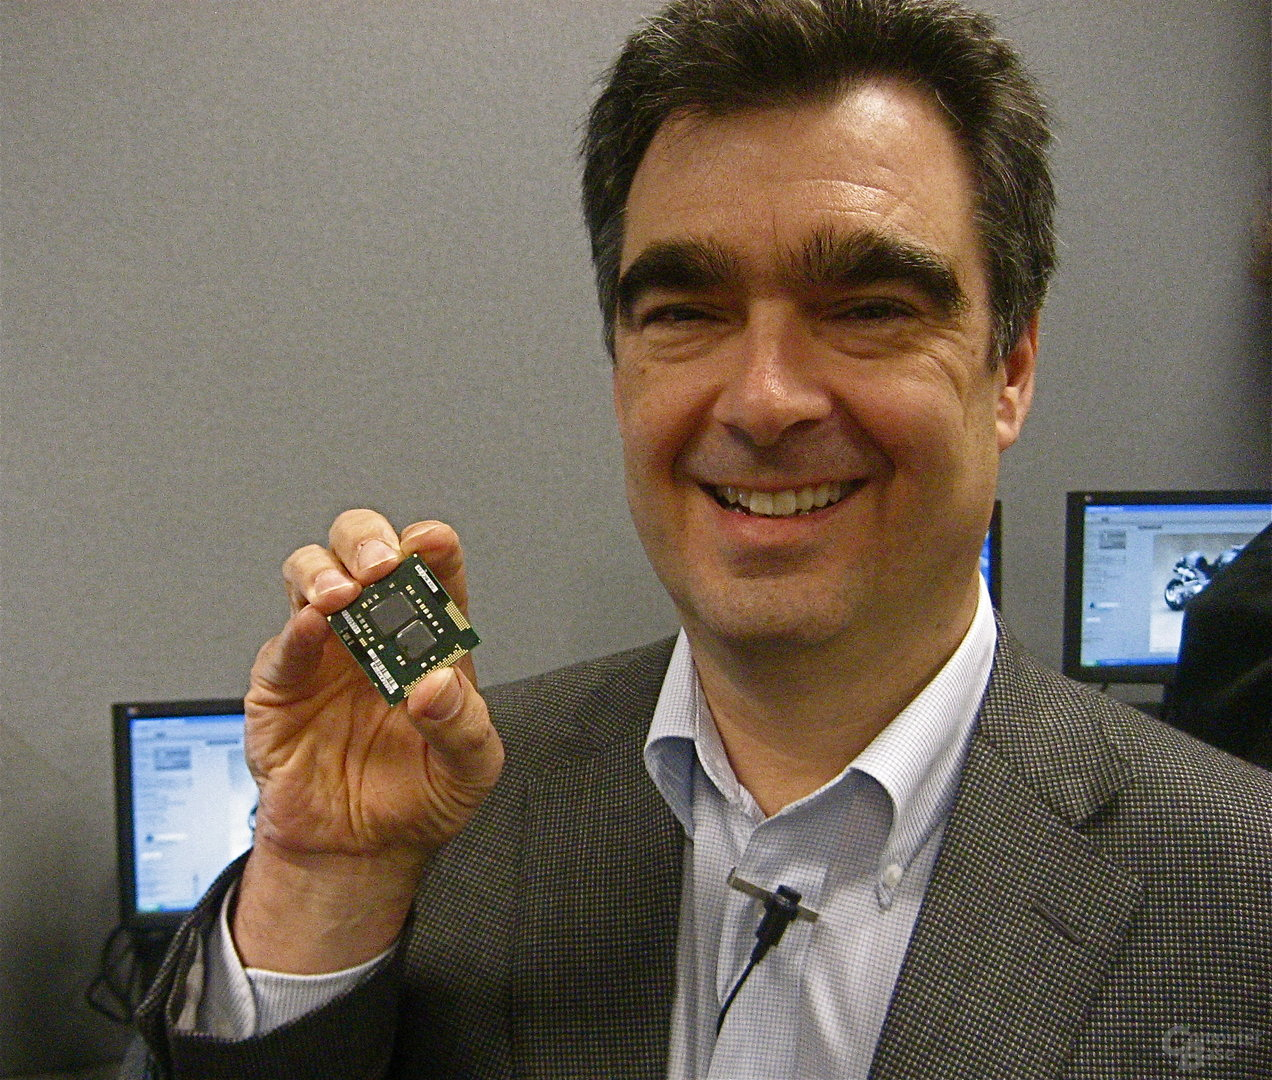 Intel Vice President Steve Smith shows 32nm Westmere microprocessor.